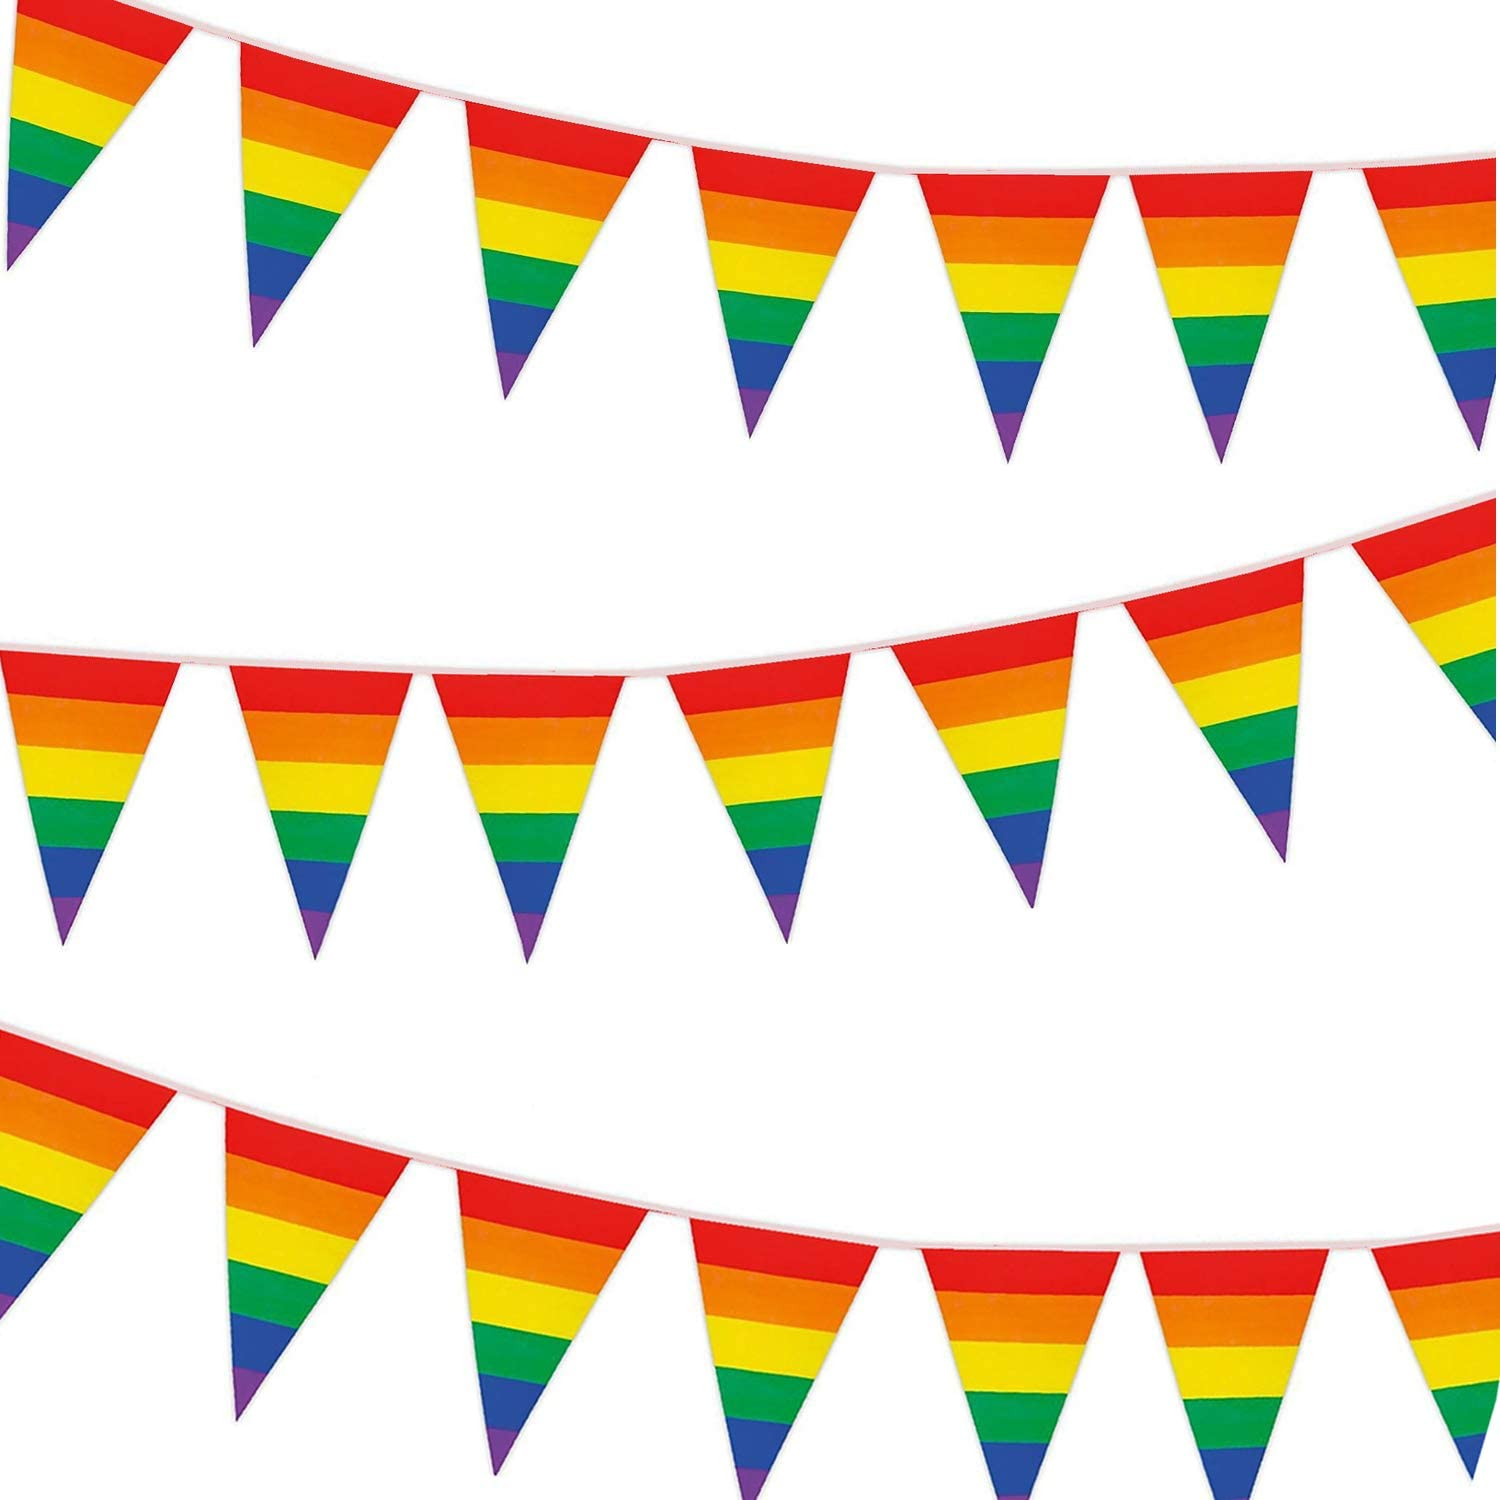 RAINBOW FLAG BUNTING 9m 30 Polyester Party Flags Gay Pride Rights Festival LGBT